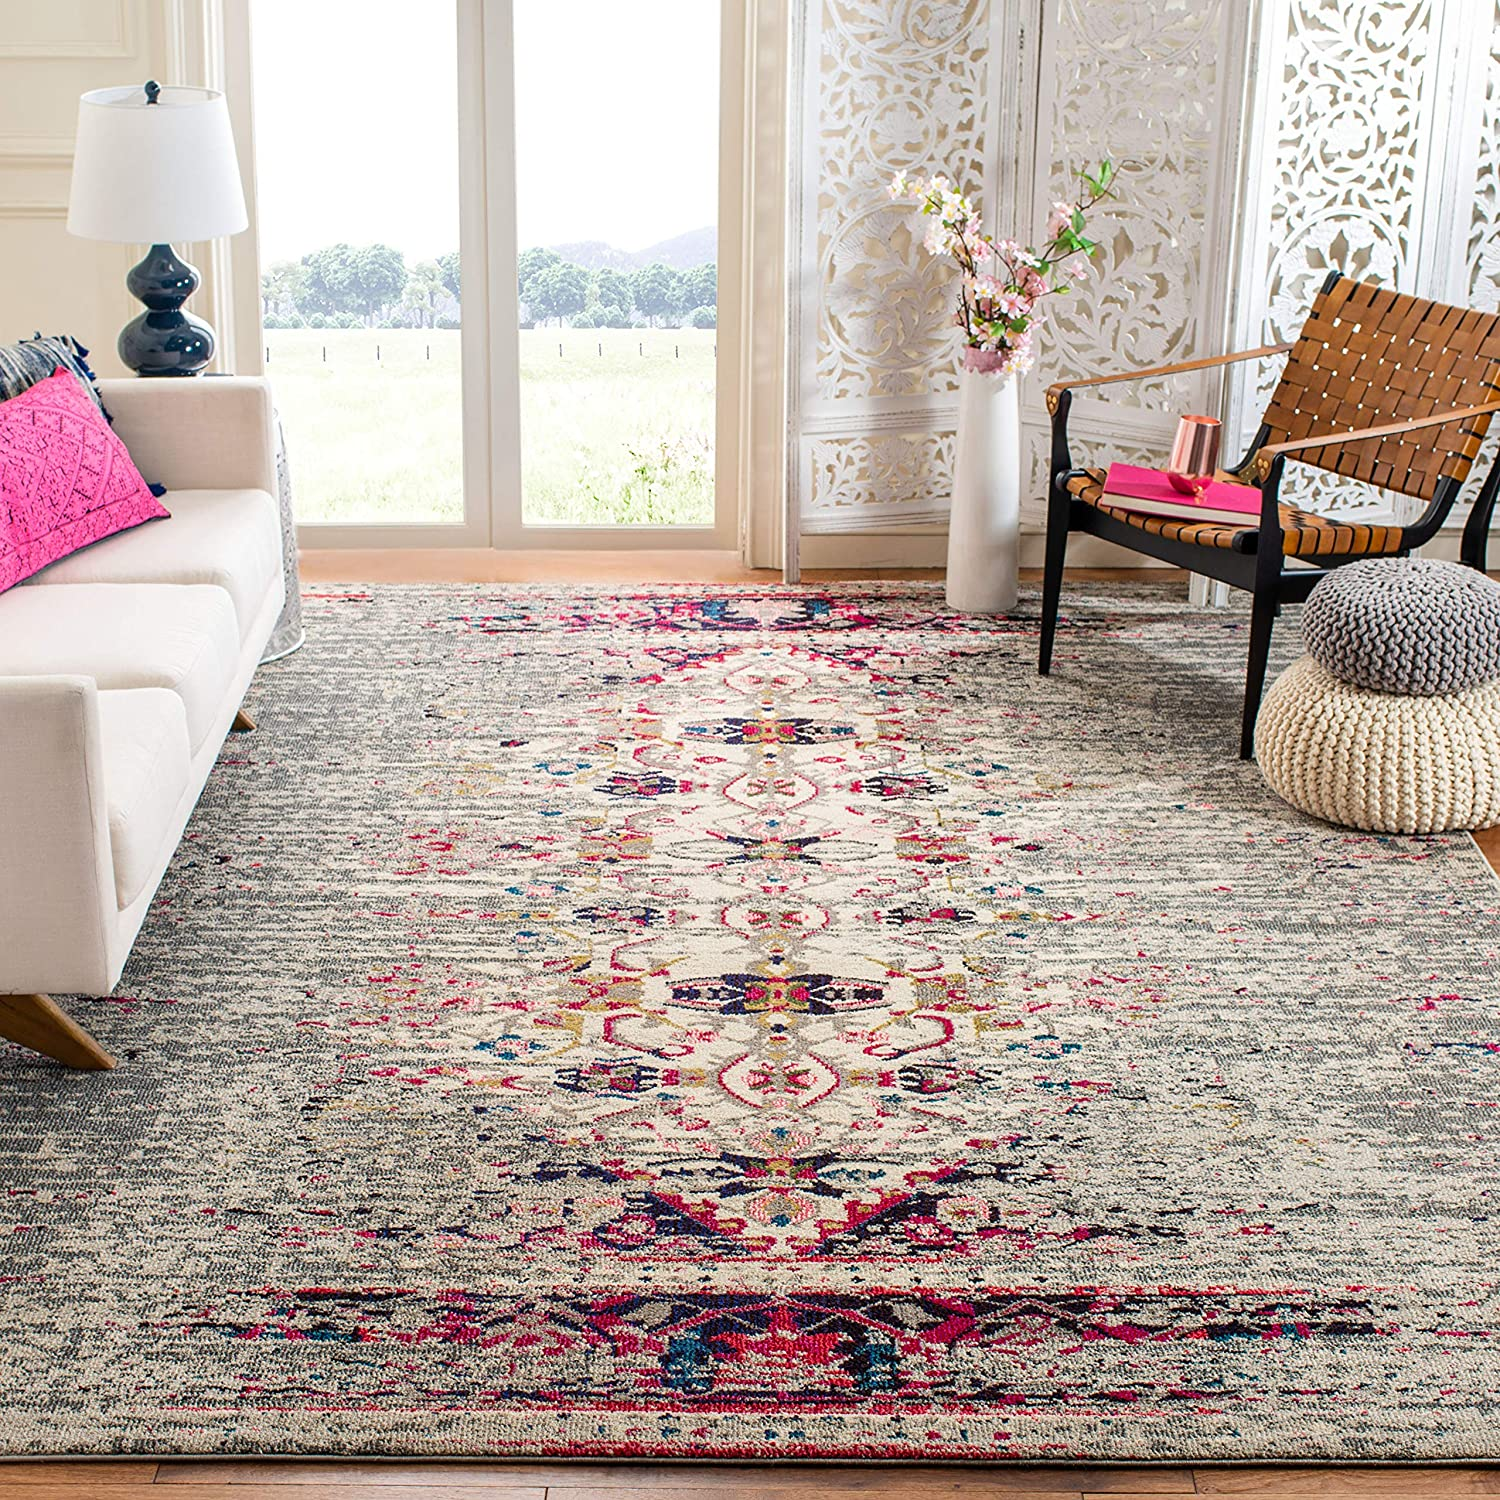 Safavieh Monaco Collection MNC209T Modern Boho Abstract Distressed Non-Shedding Stain Resistant Living Room Bedroom Area Rug, 9' x 12', Grey / Ivory